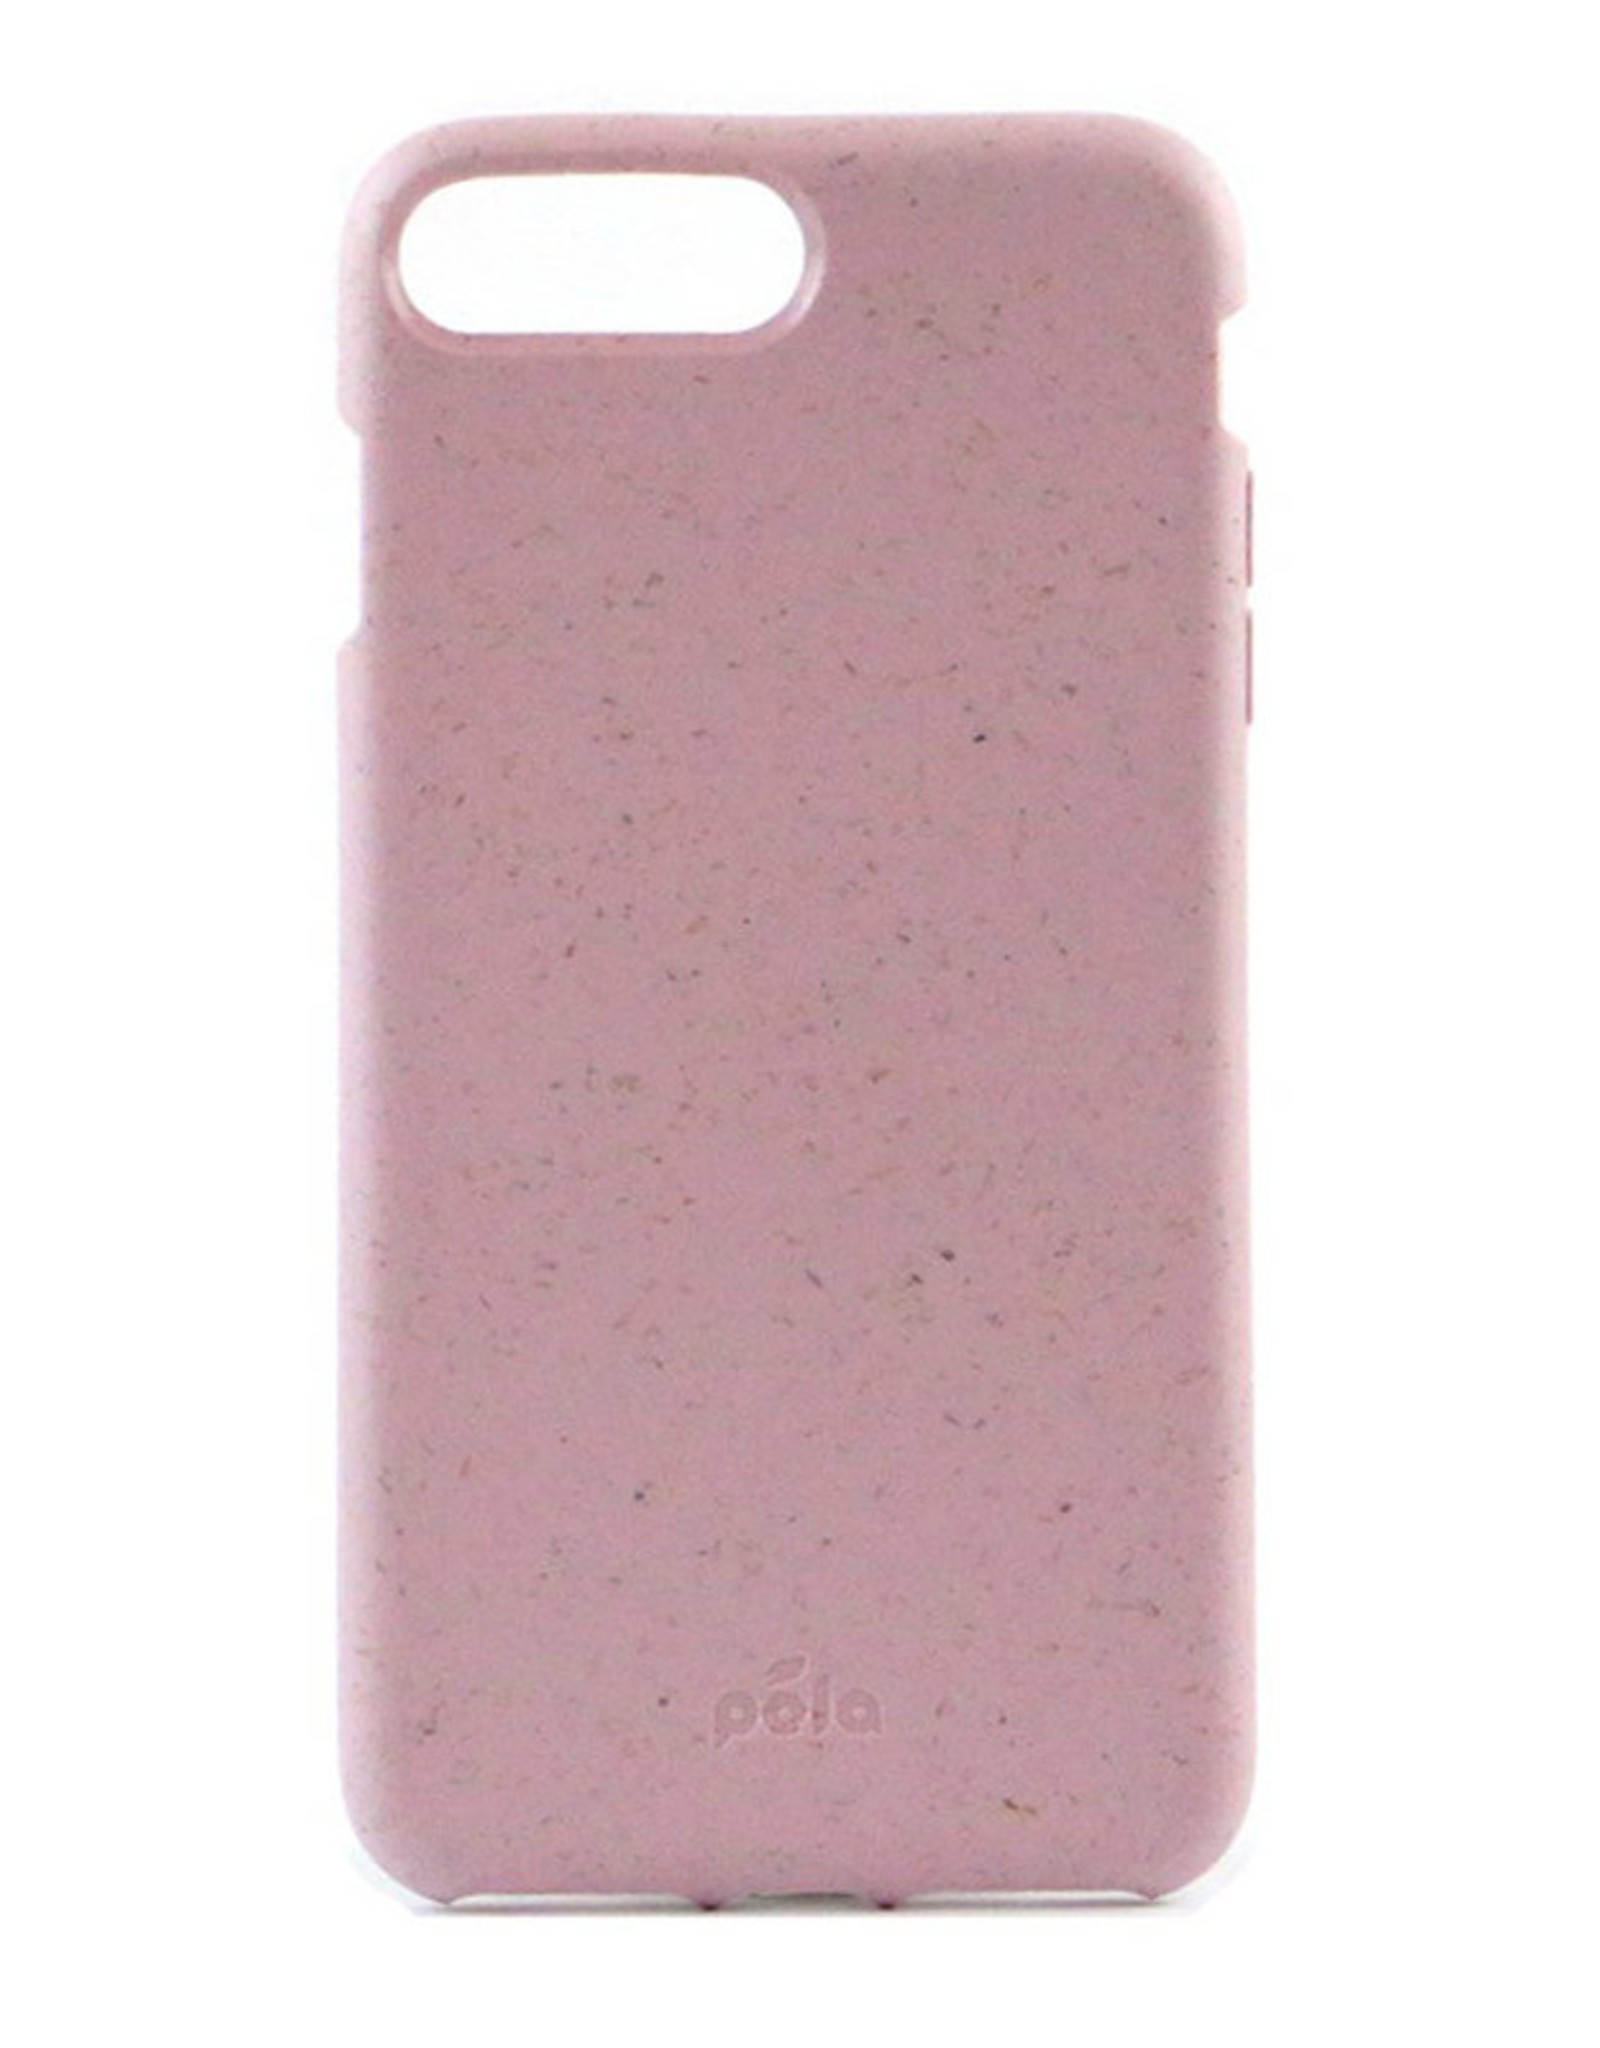 Pela Pela iPhone 6S/7/8 Plus Case